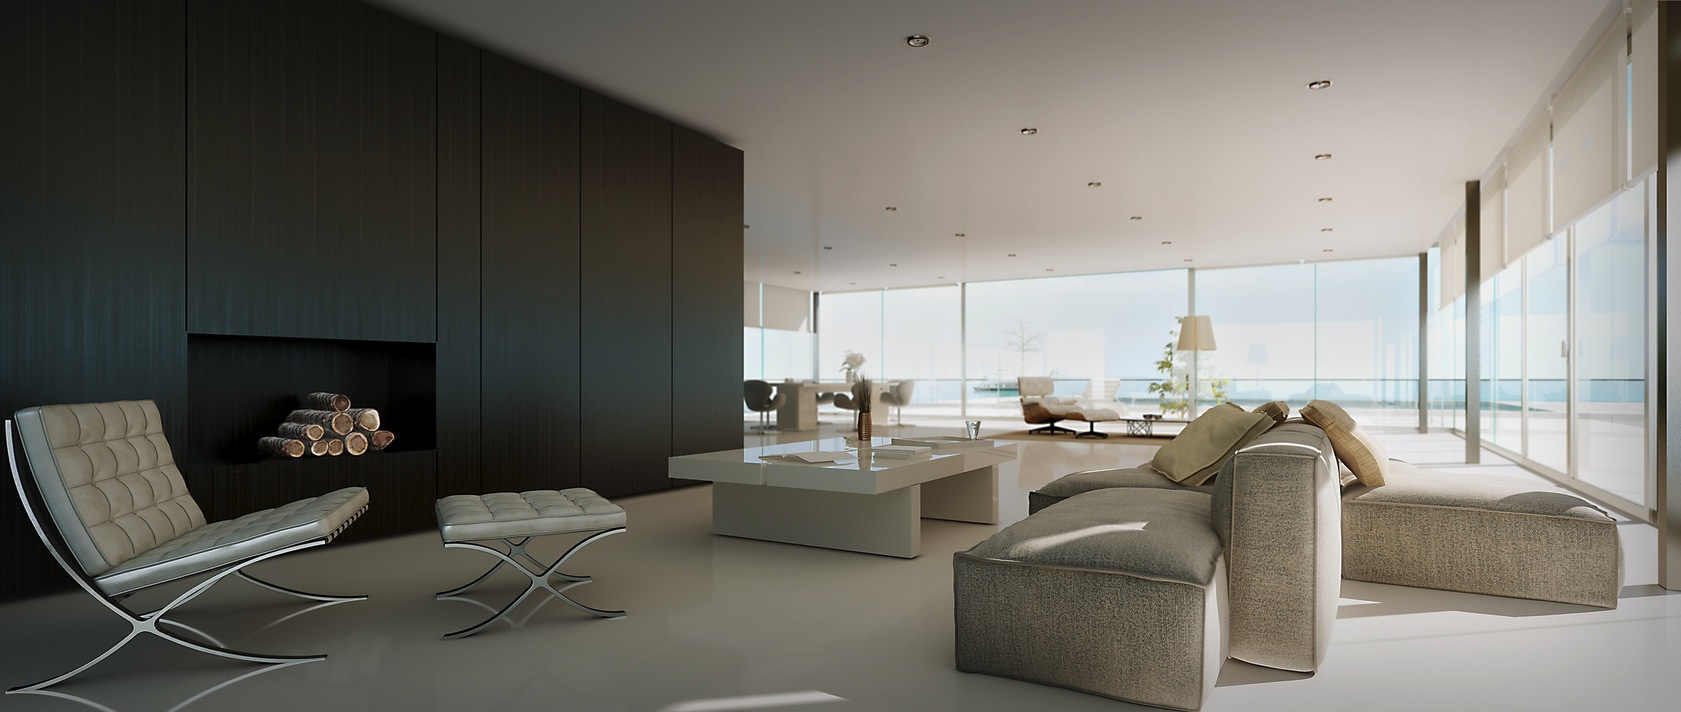 Chic-neutral-sophisticated-living-scheme